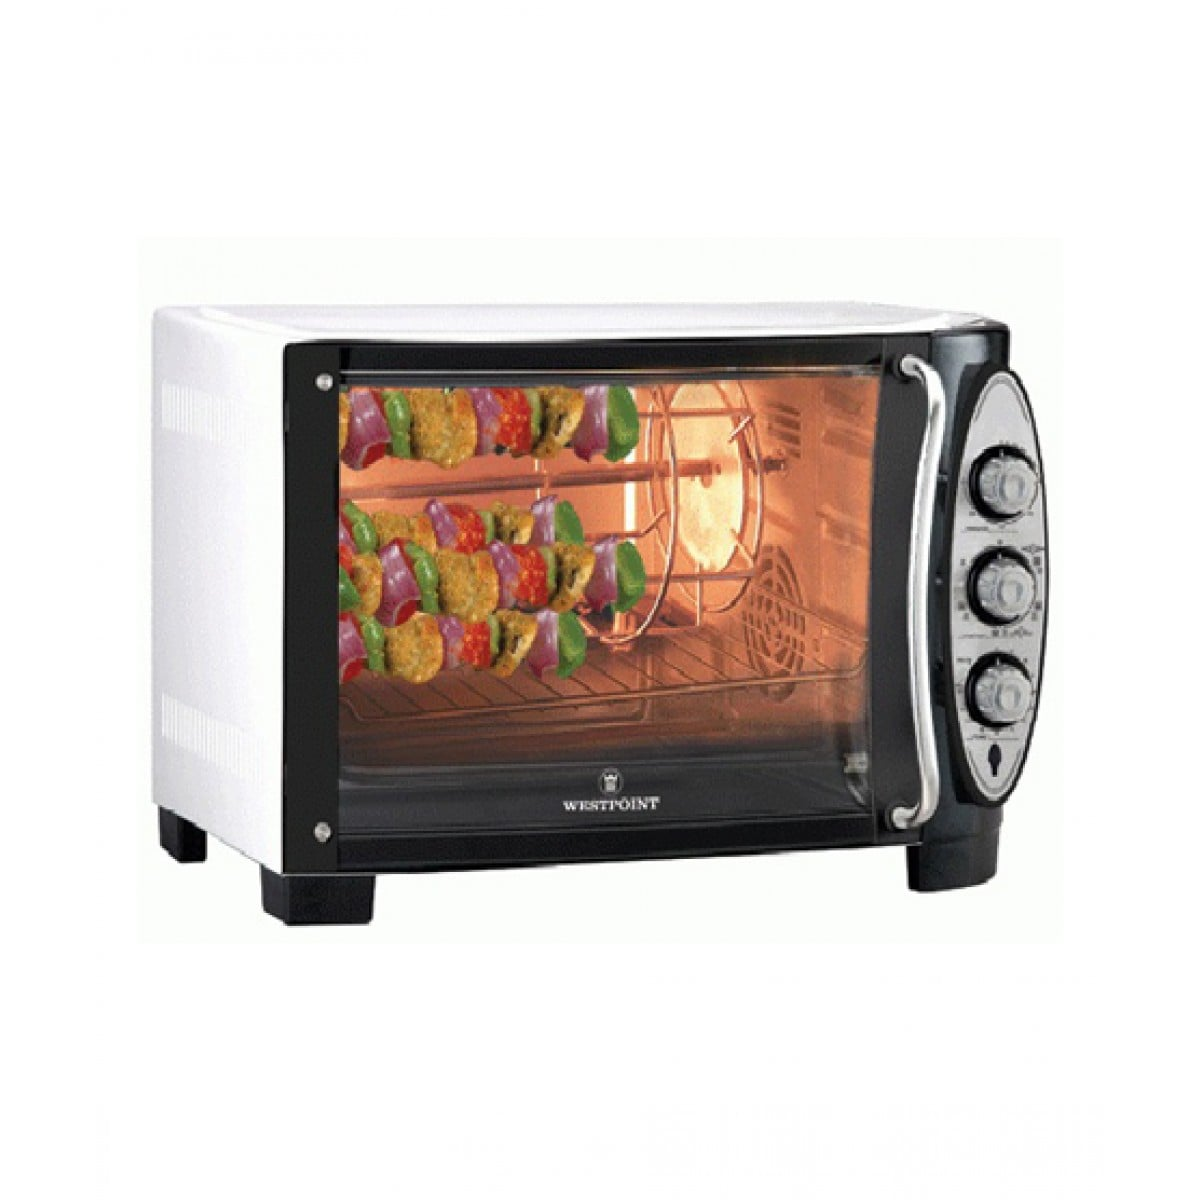 wf 4800r westpoint electric oven grill rotisserie 1800 watts 55ltr